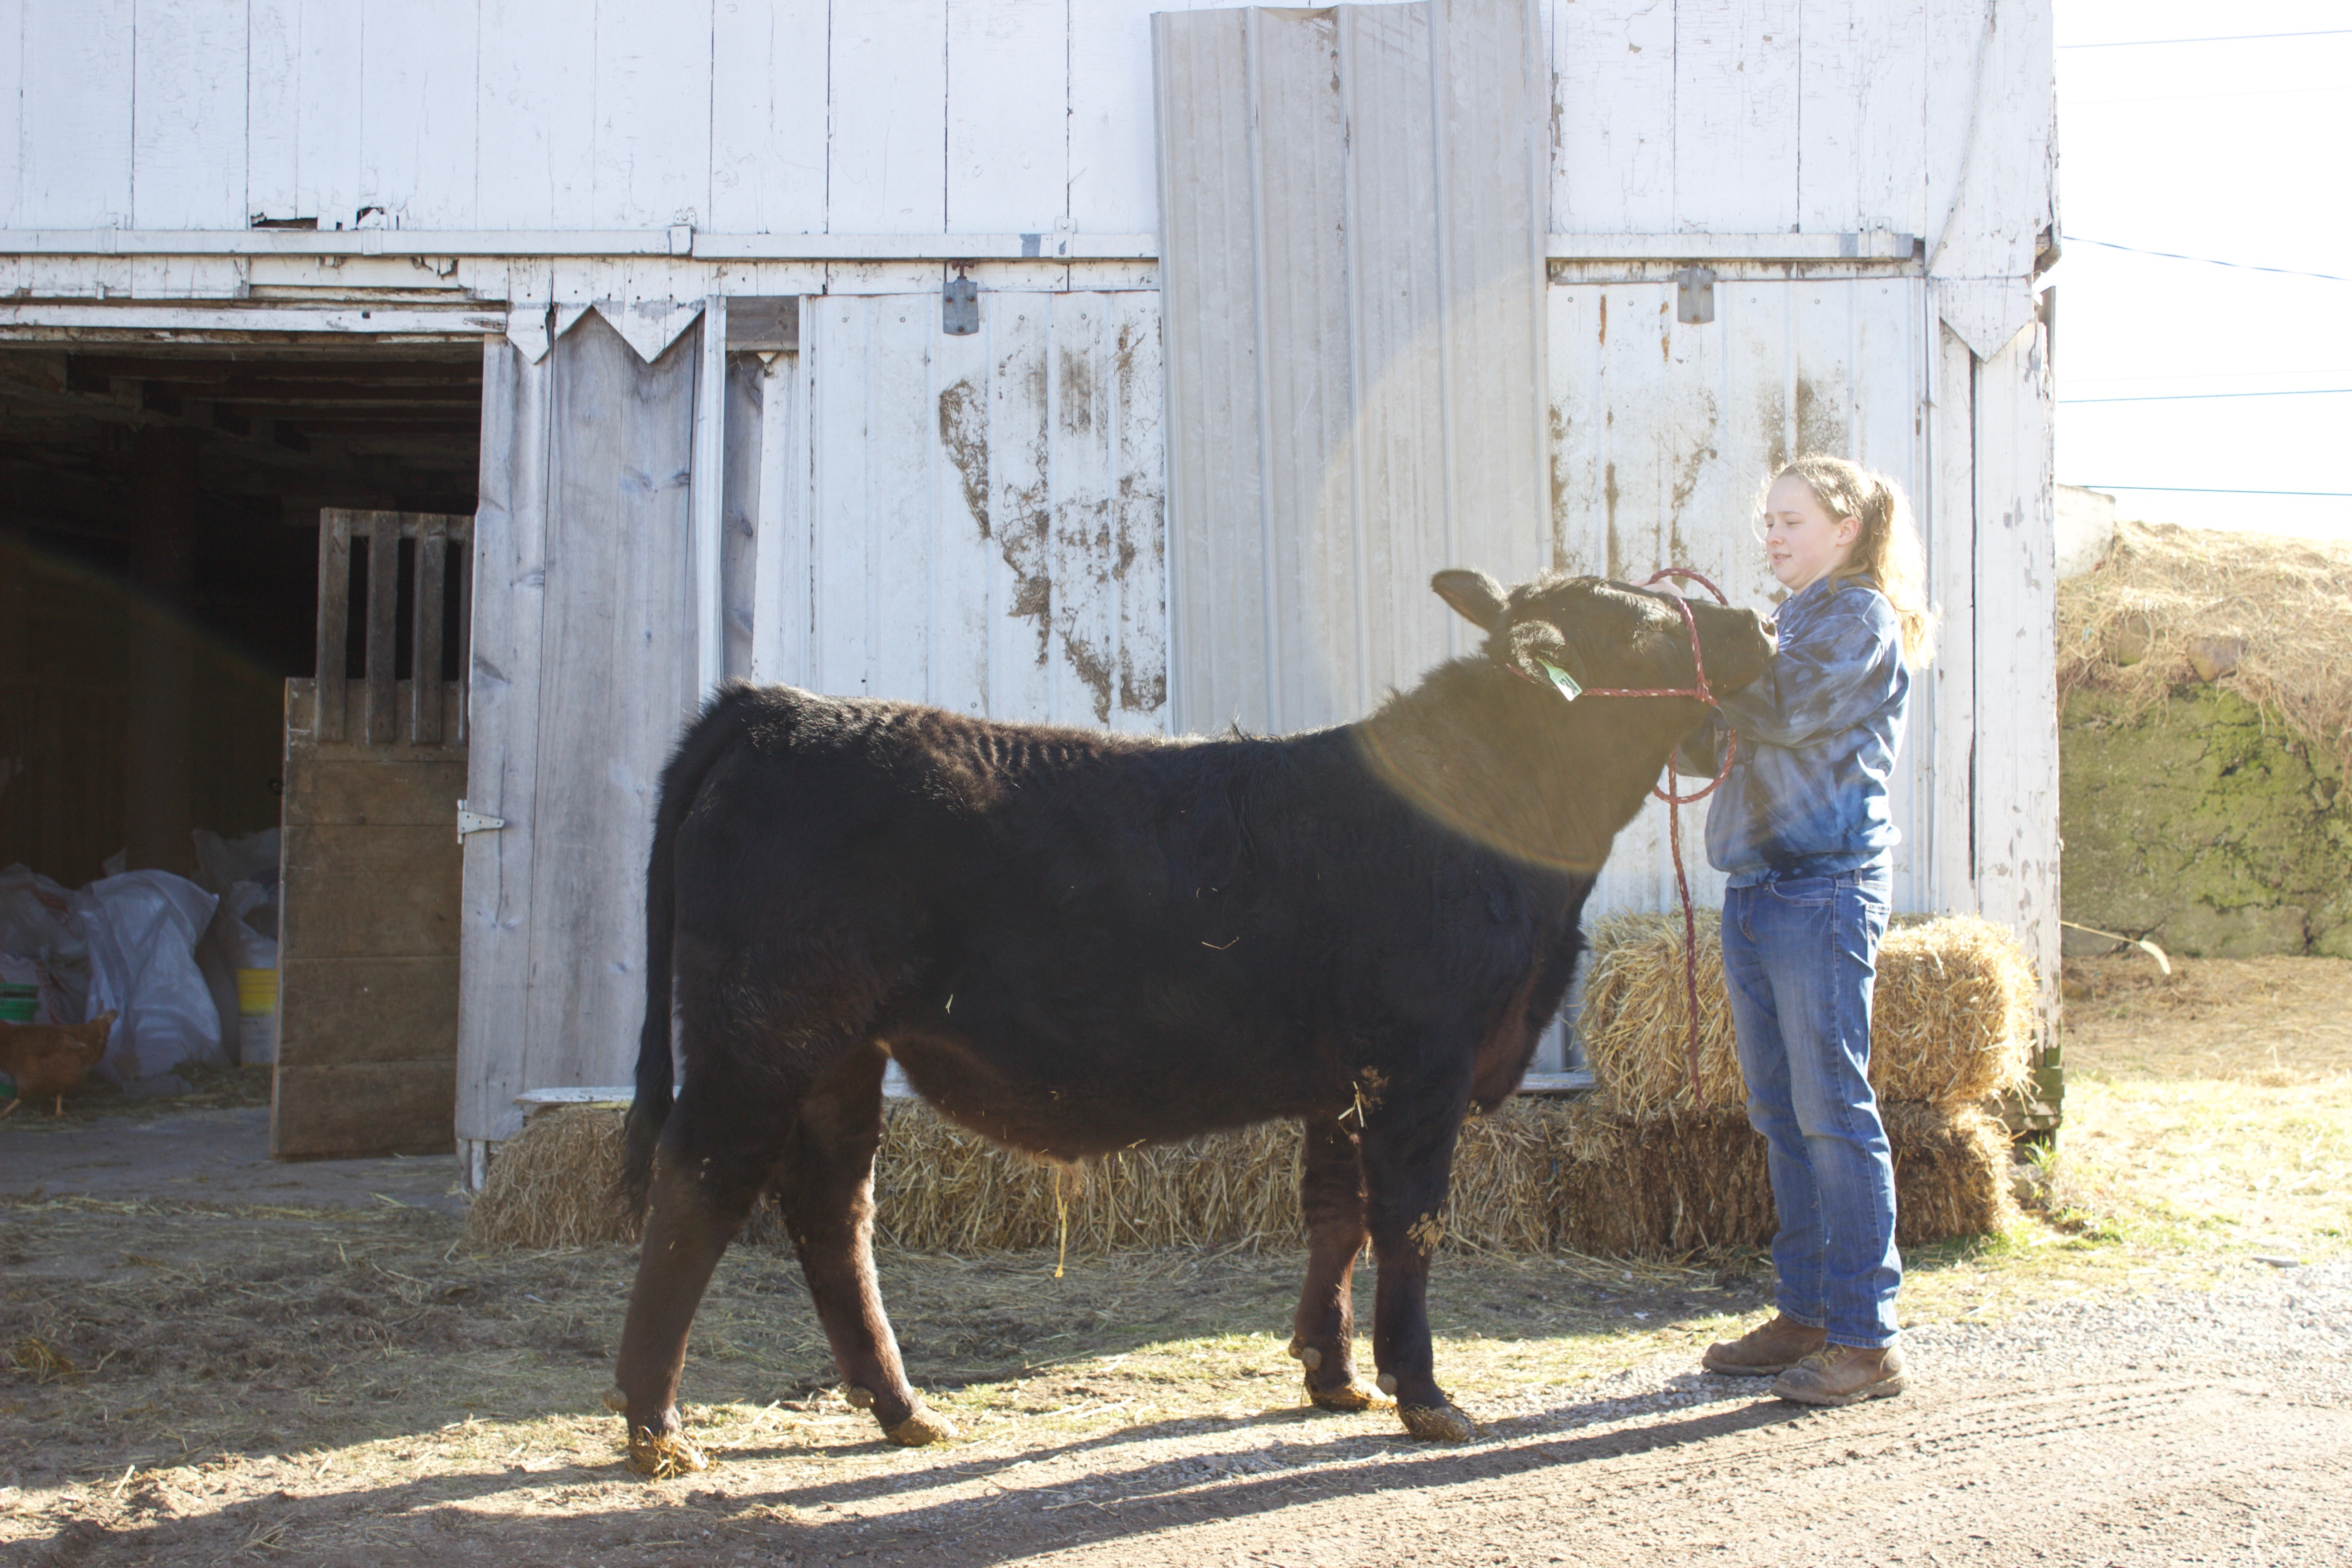 A girl stands with a steer